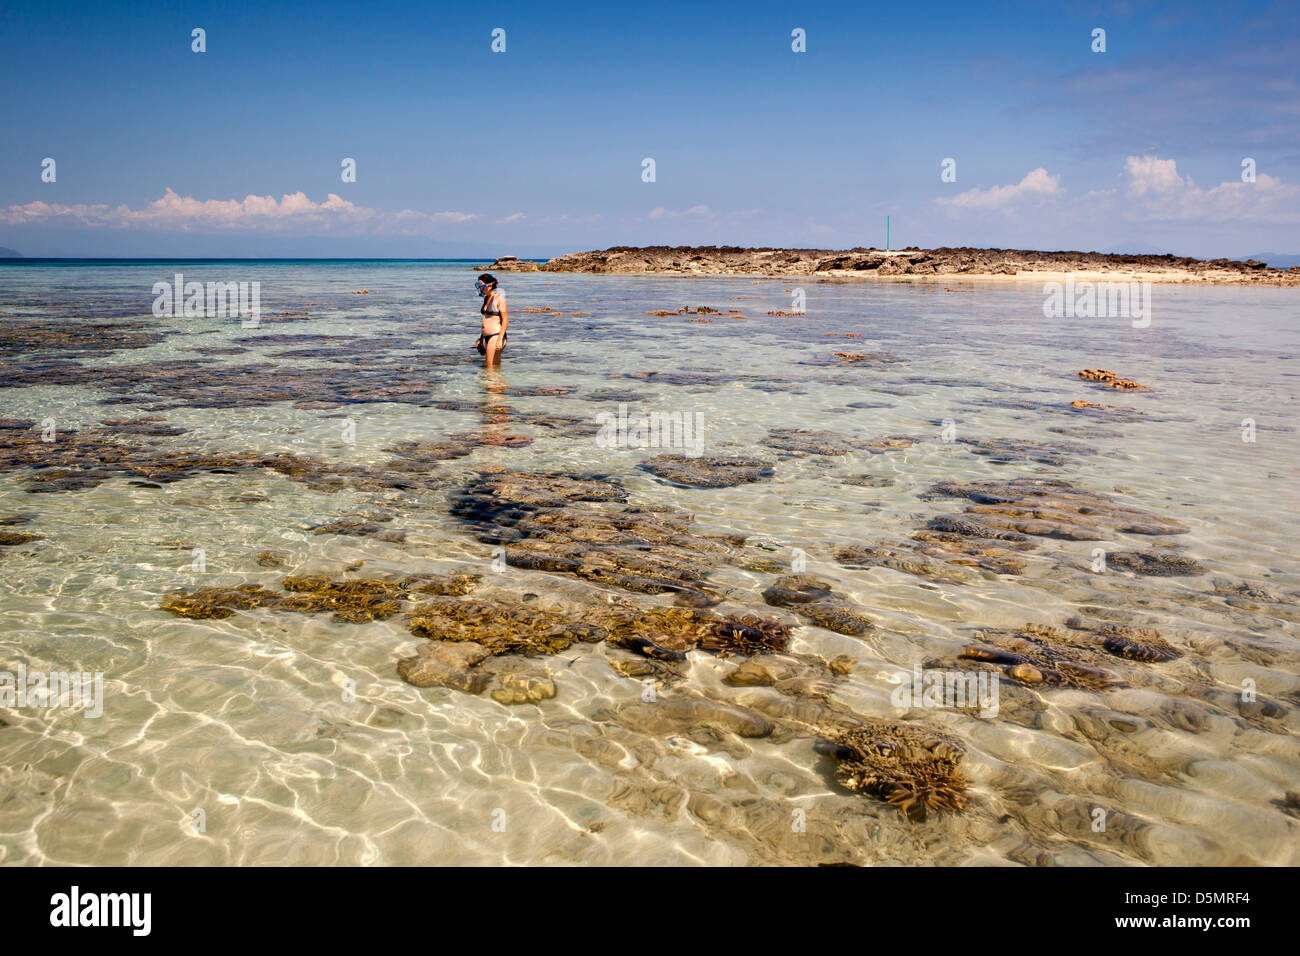 Madagascar, Nosy Be, Nosy Tanikely island snorkeller amongst coral heads off main beach - Stock Image